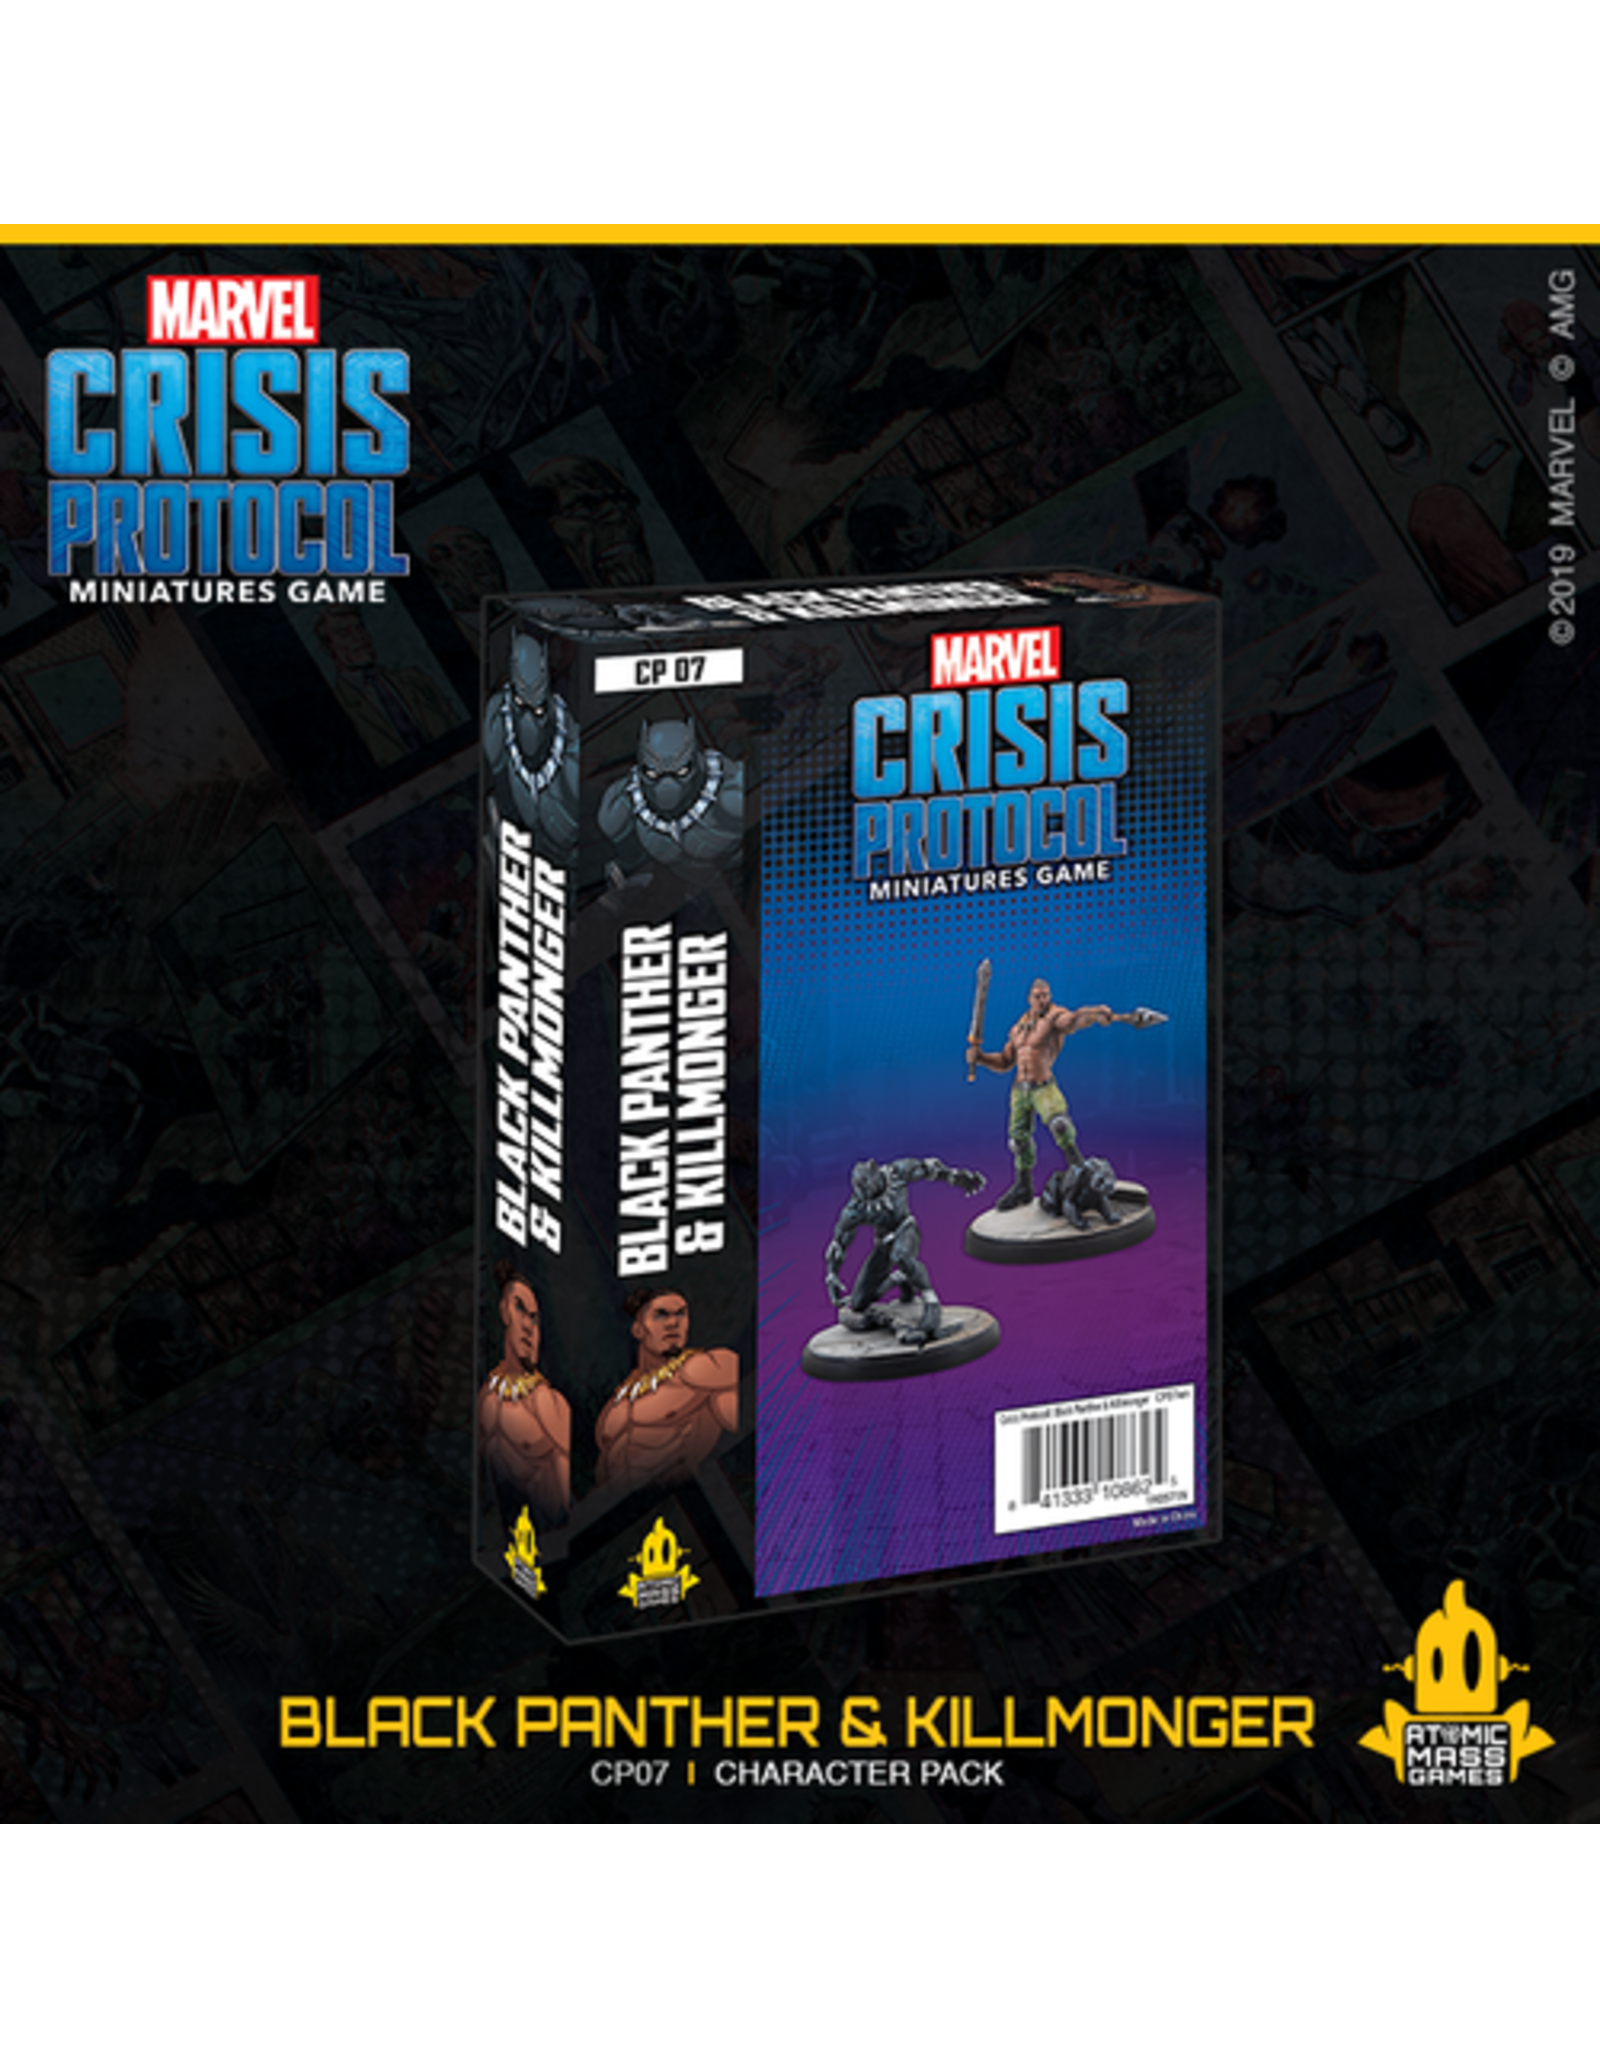 Atomic Mass Games Black Panther and Killmonger Character Pack - Marvel Crisis Protocol